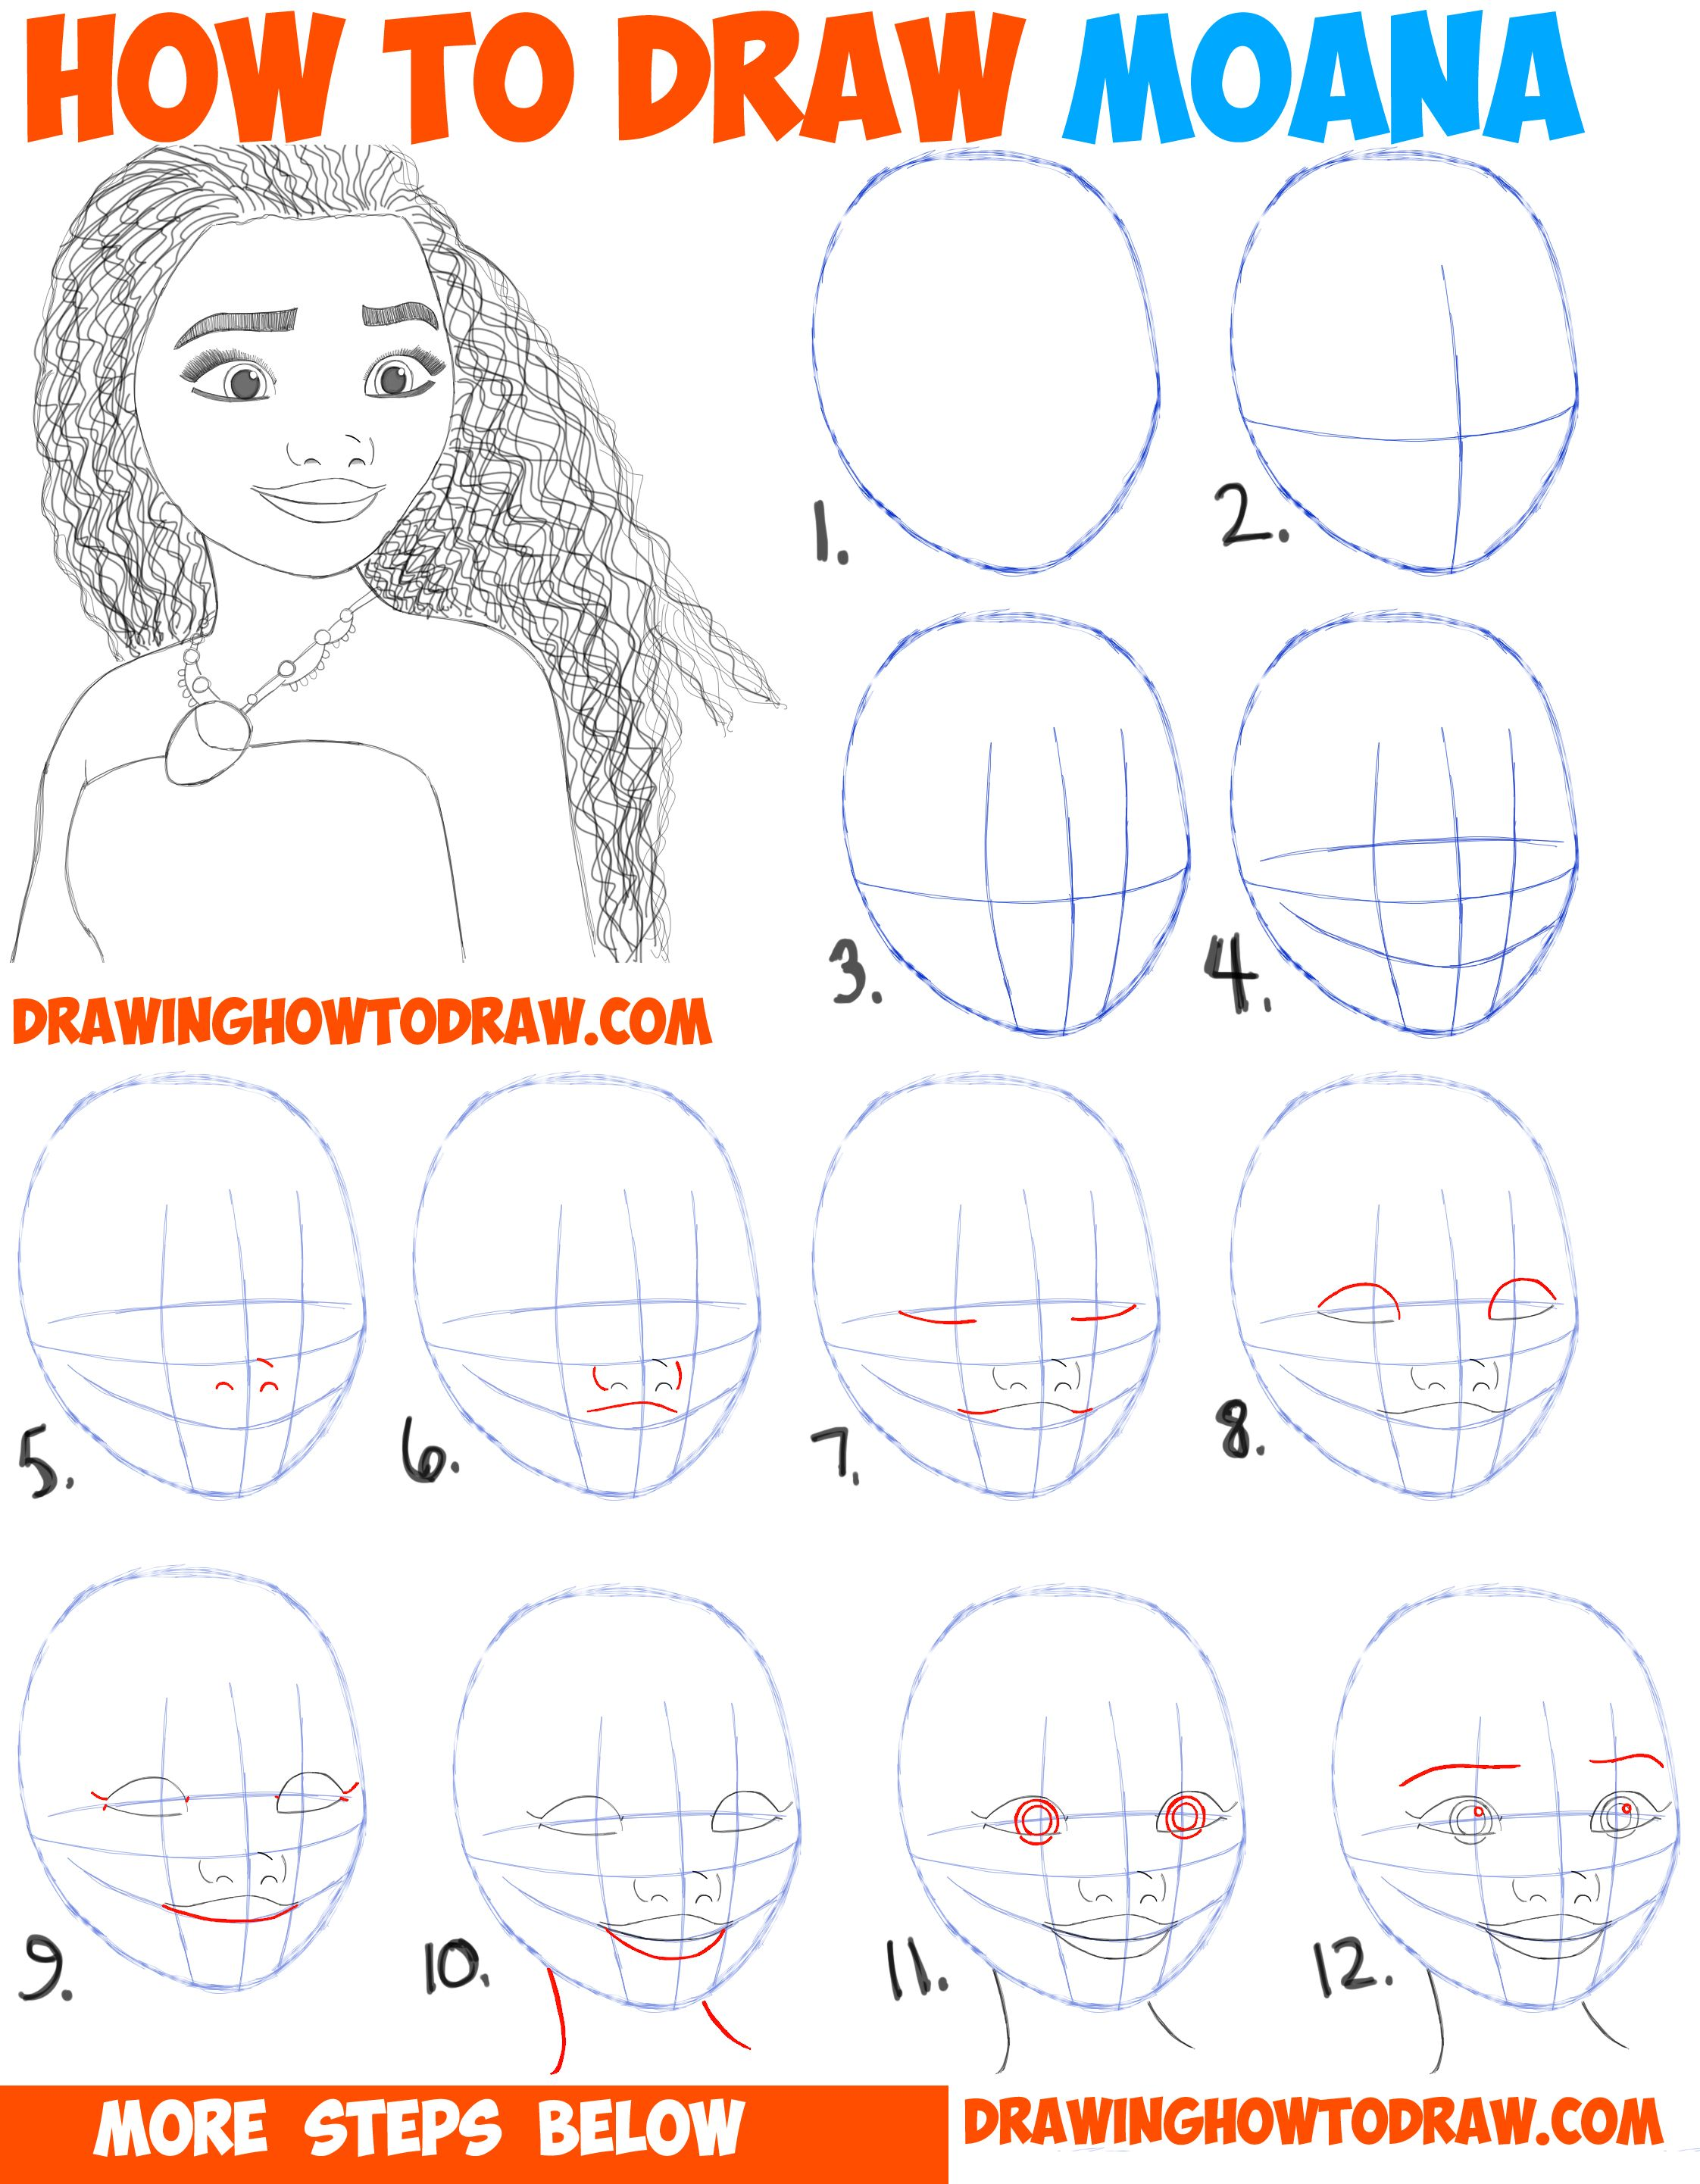 How to draw moana easy step by step drawing tutorial for for Learn to draw cartoons step by step lessons